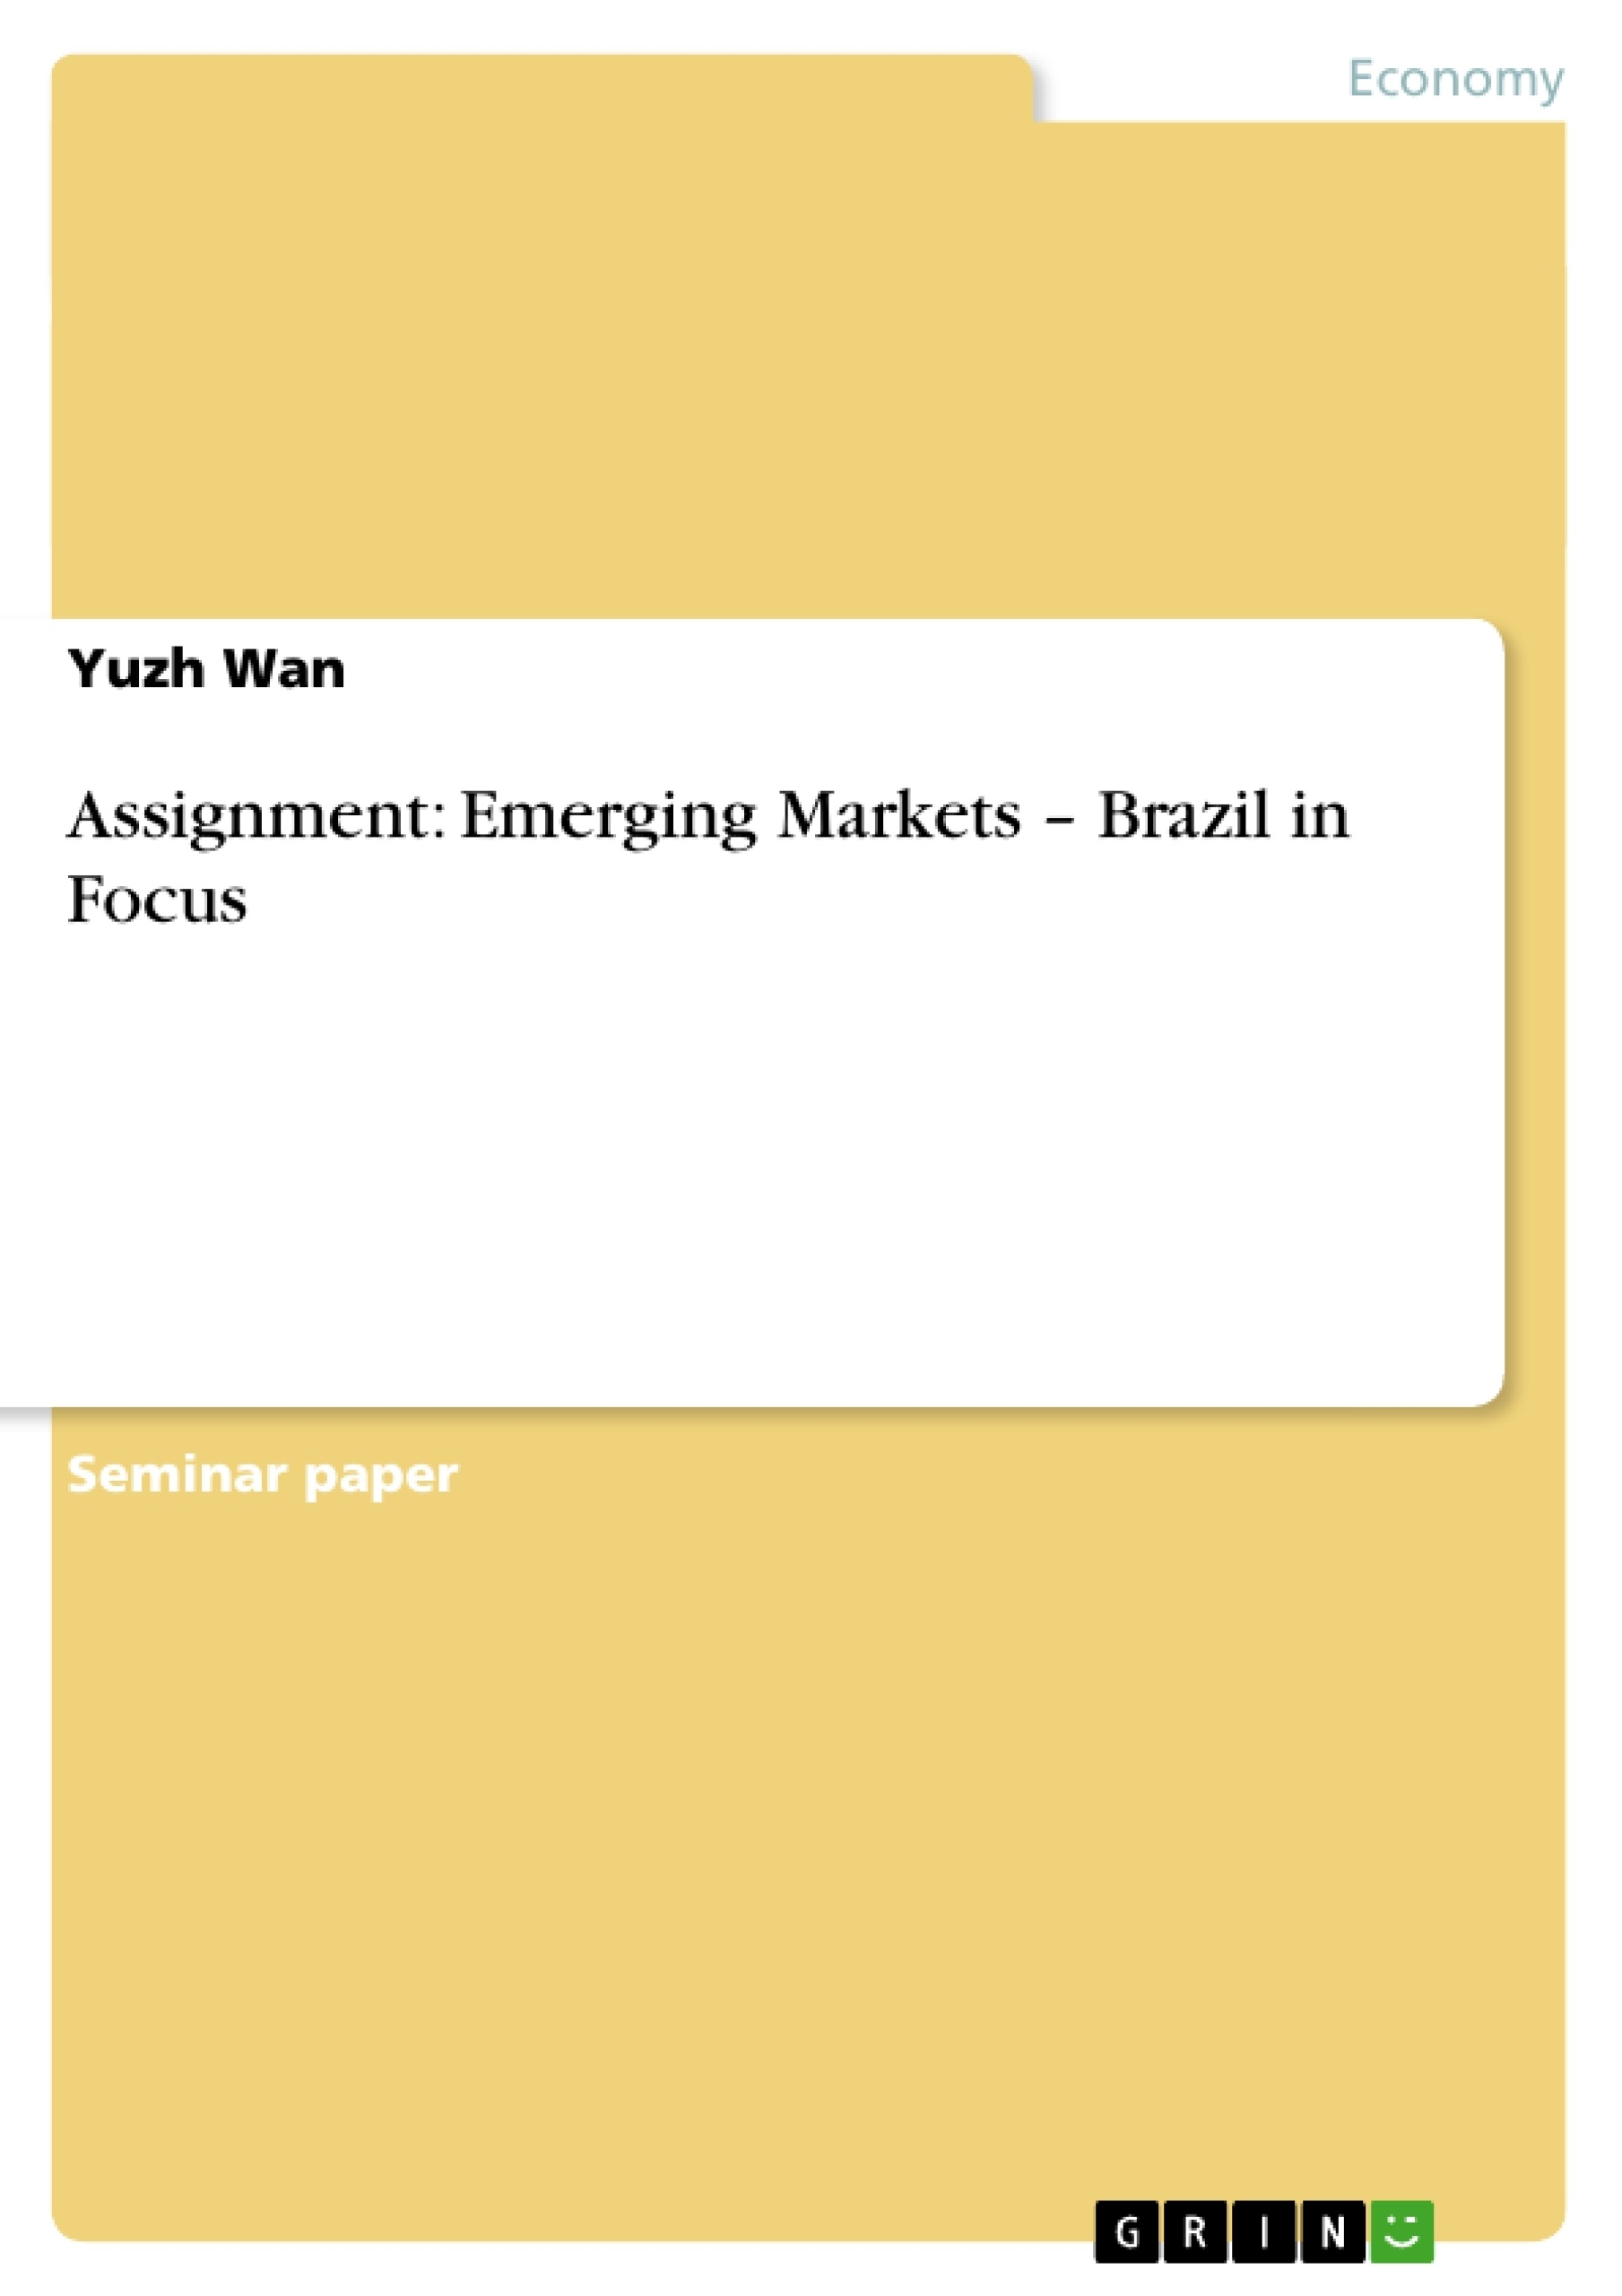 Title: Assignment: Emerging Markets – Brazil in Focus